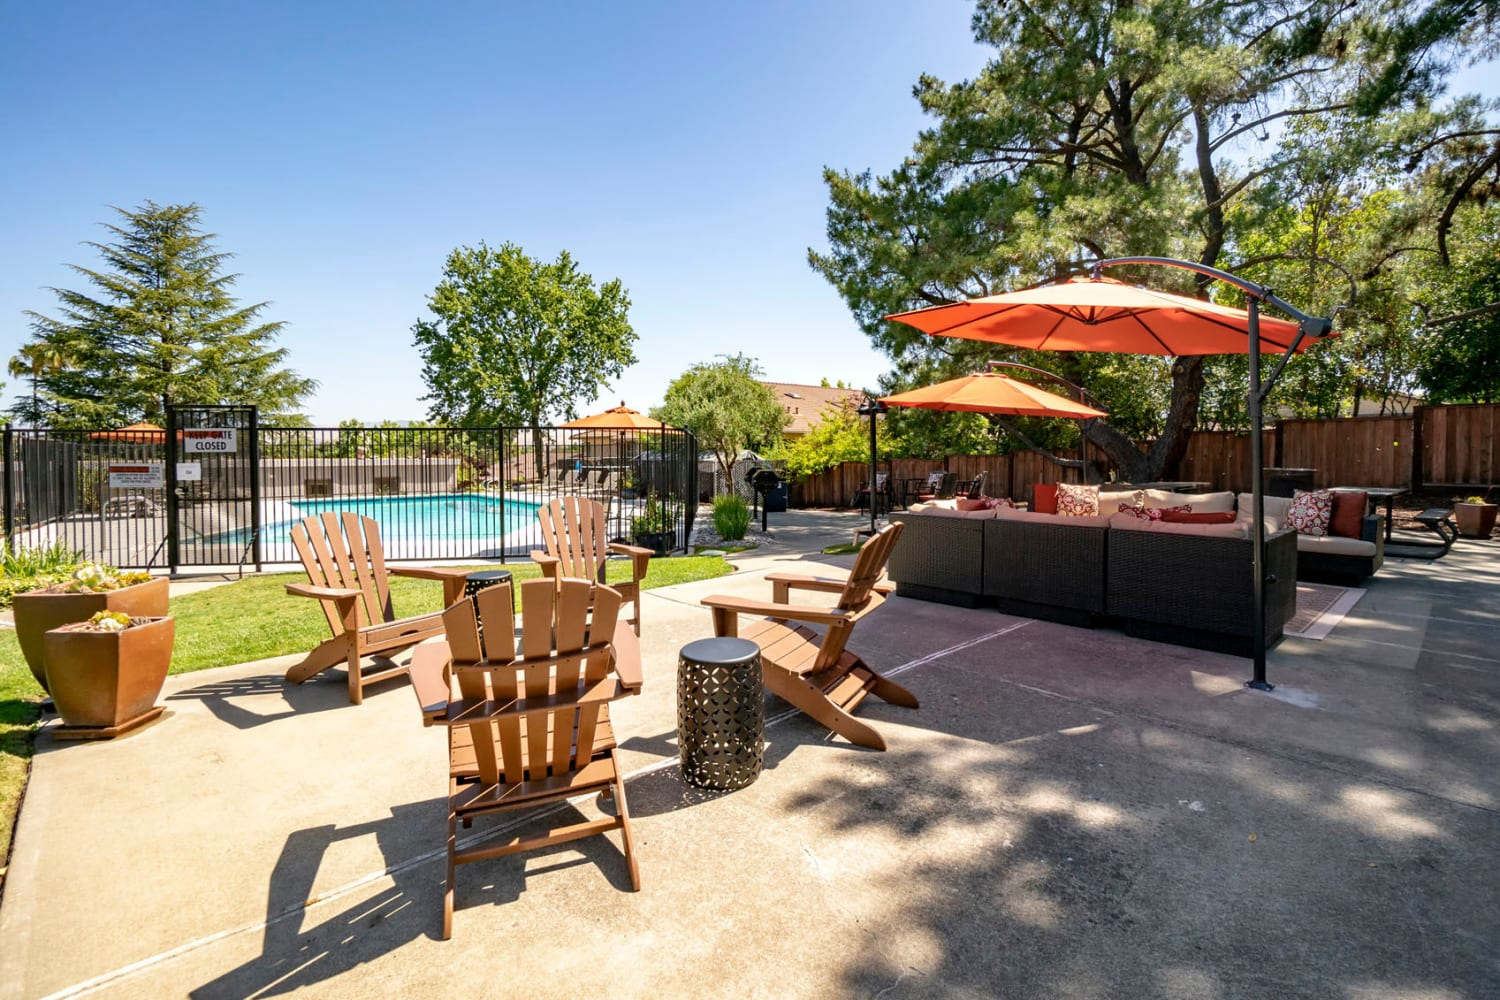 Barbecue area with Adirondack chairs with a view of the swimming pool at Pleasanton Heights in Pleasanton, California